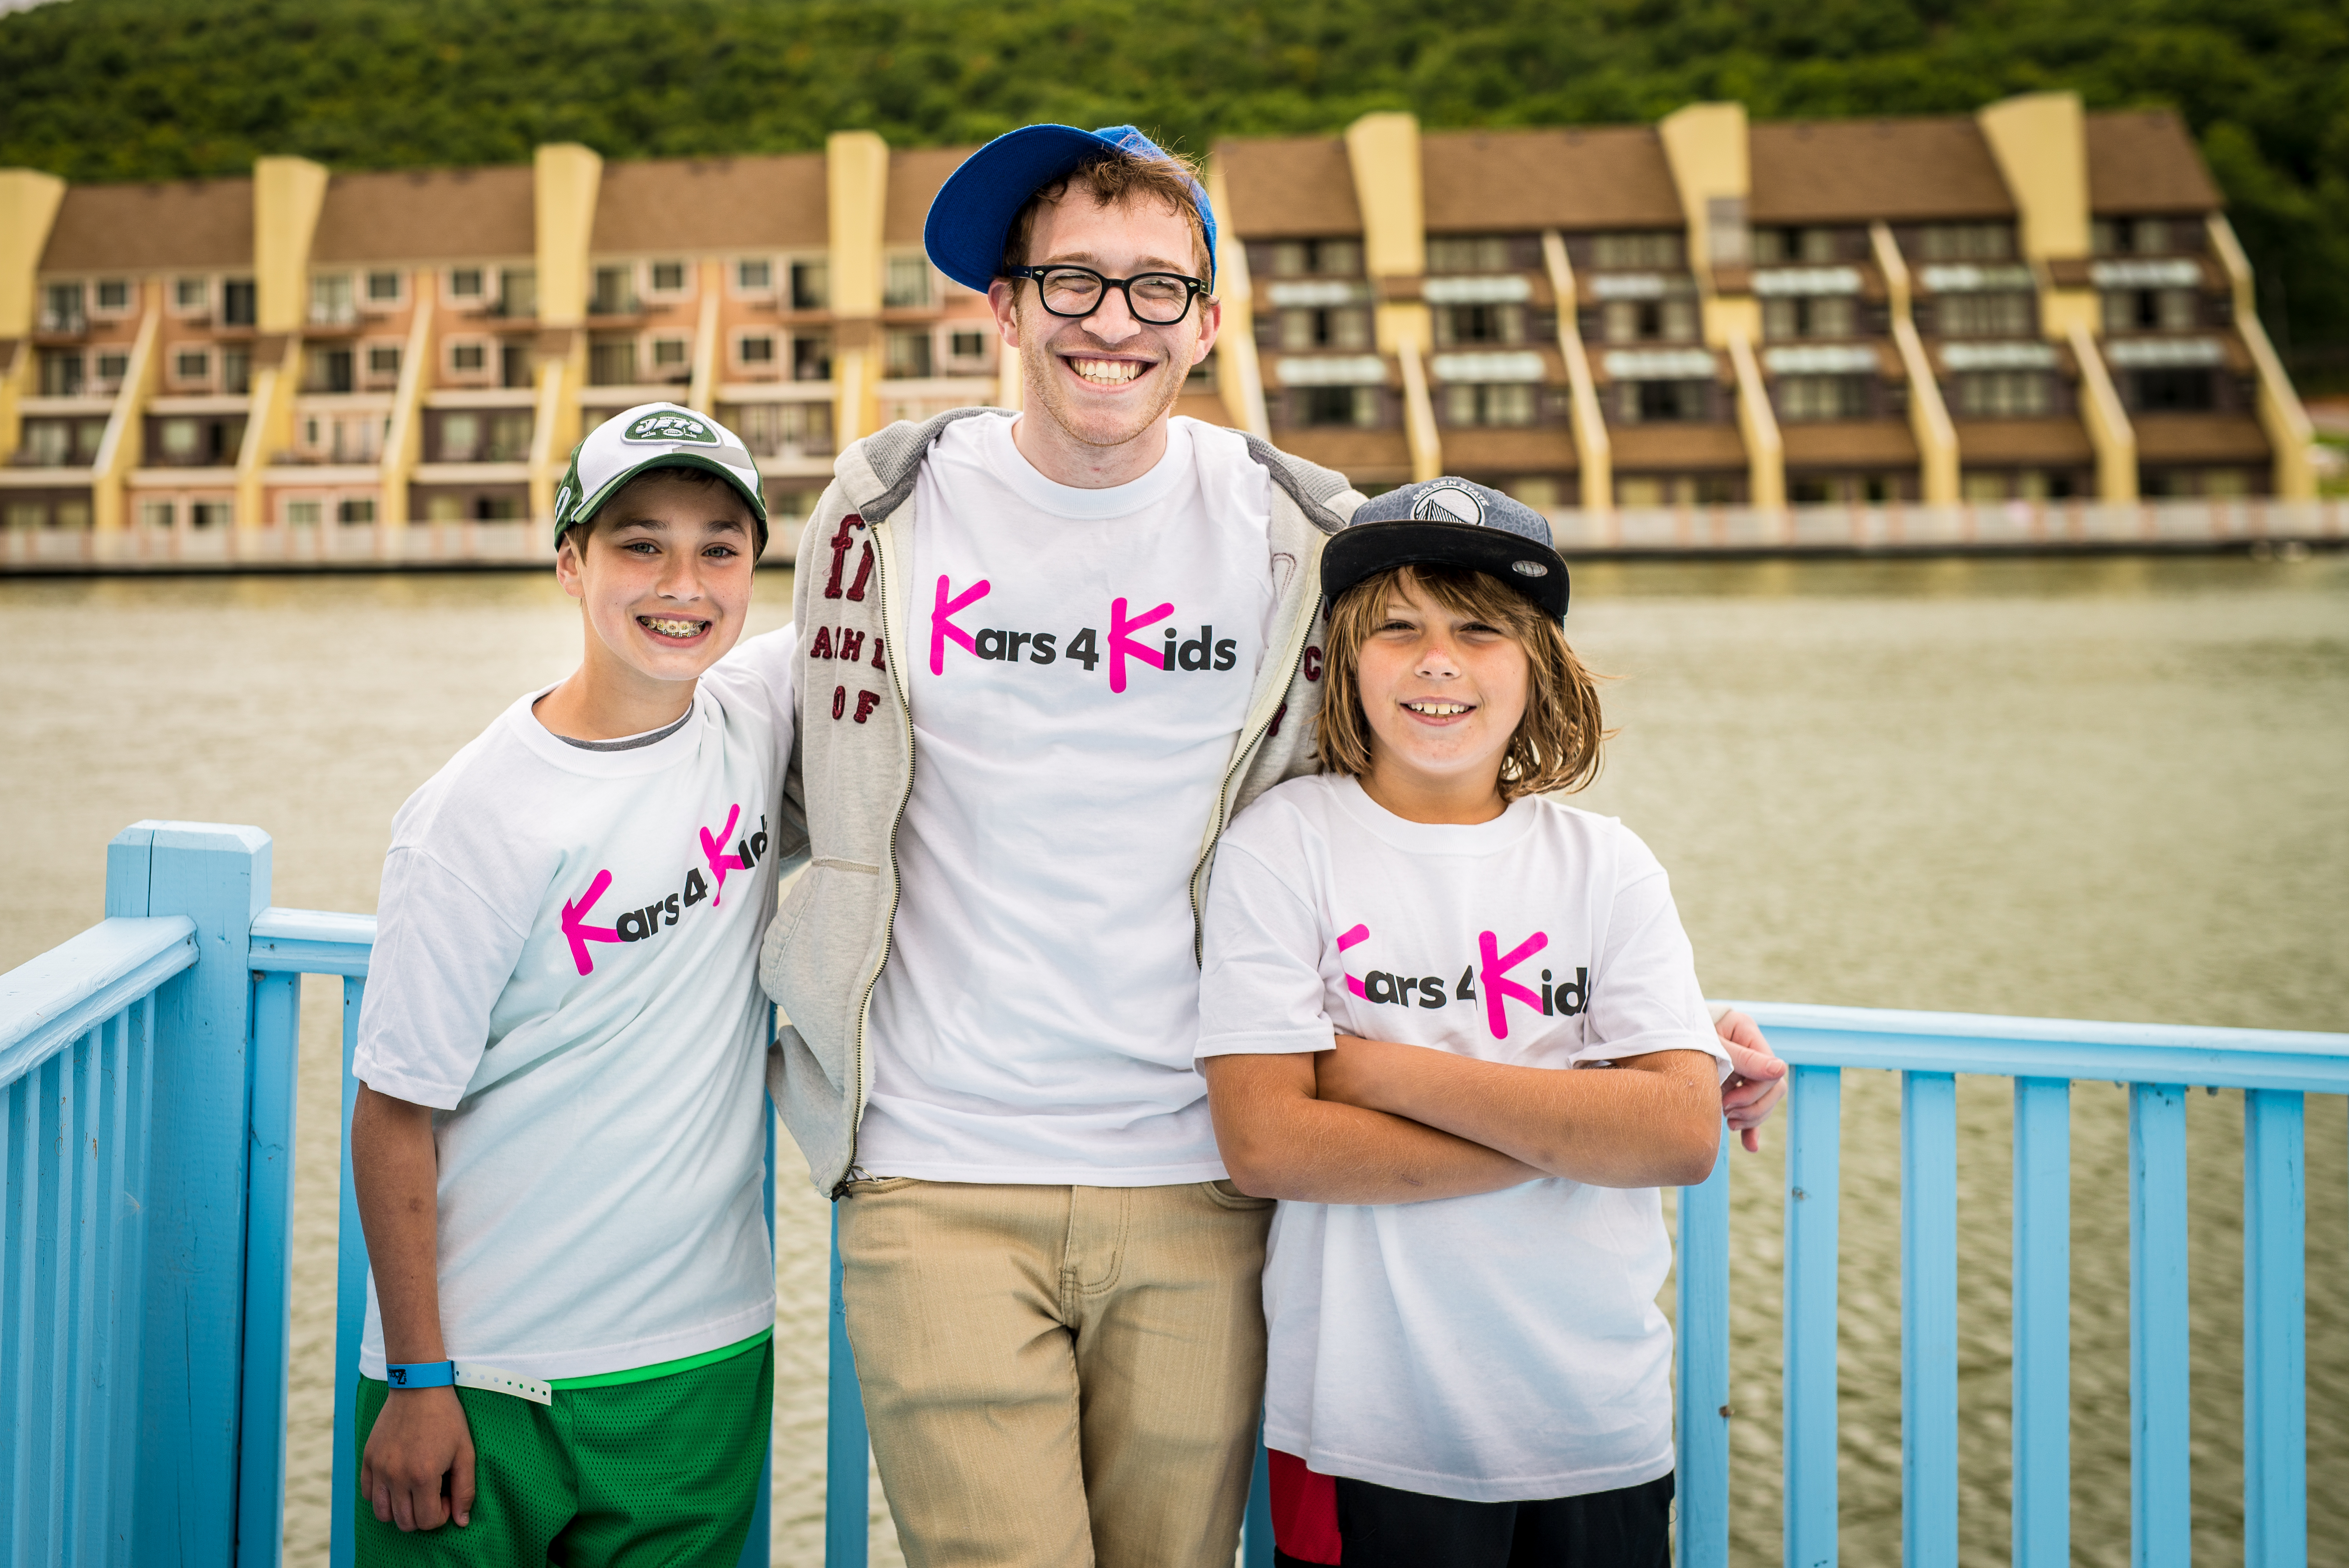 an adult and 2 children smiling and wearing kars4kids t shirts